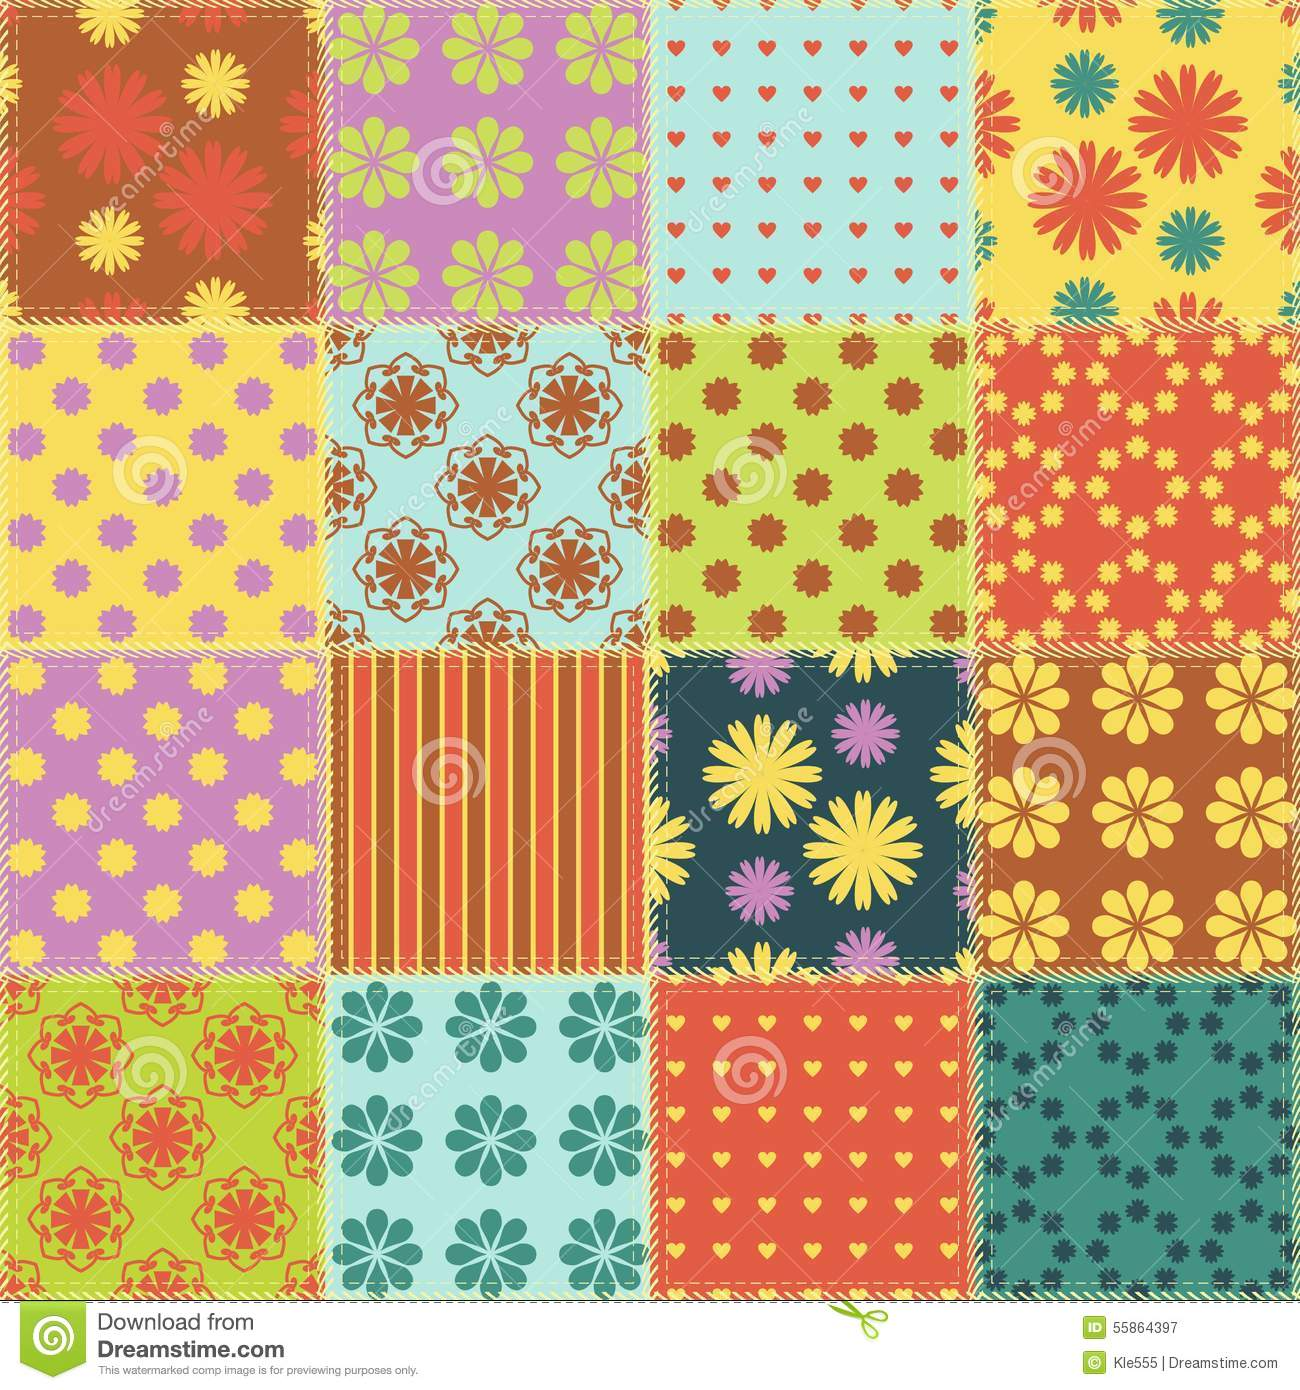 patchwork background patchwork background stock photo cartoondealer com 35696058 5288